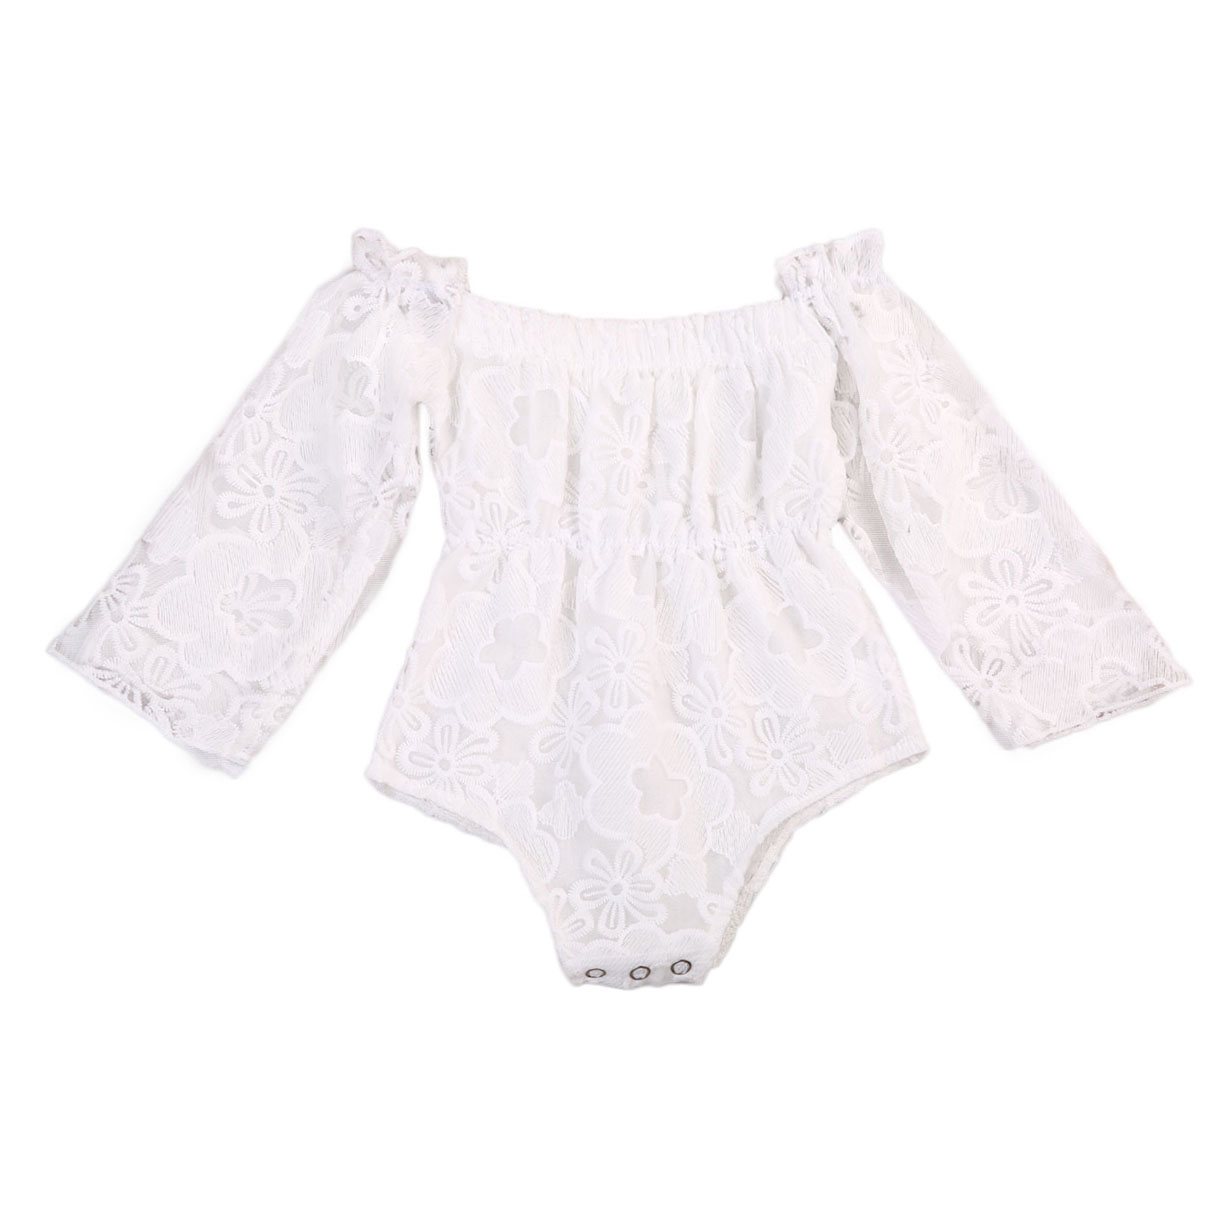 e5c35bf3165c Pudcoco Newborn Toddler Baby Girls Lace Romper Long Sleeve Off ...